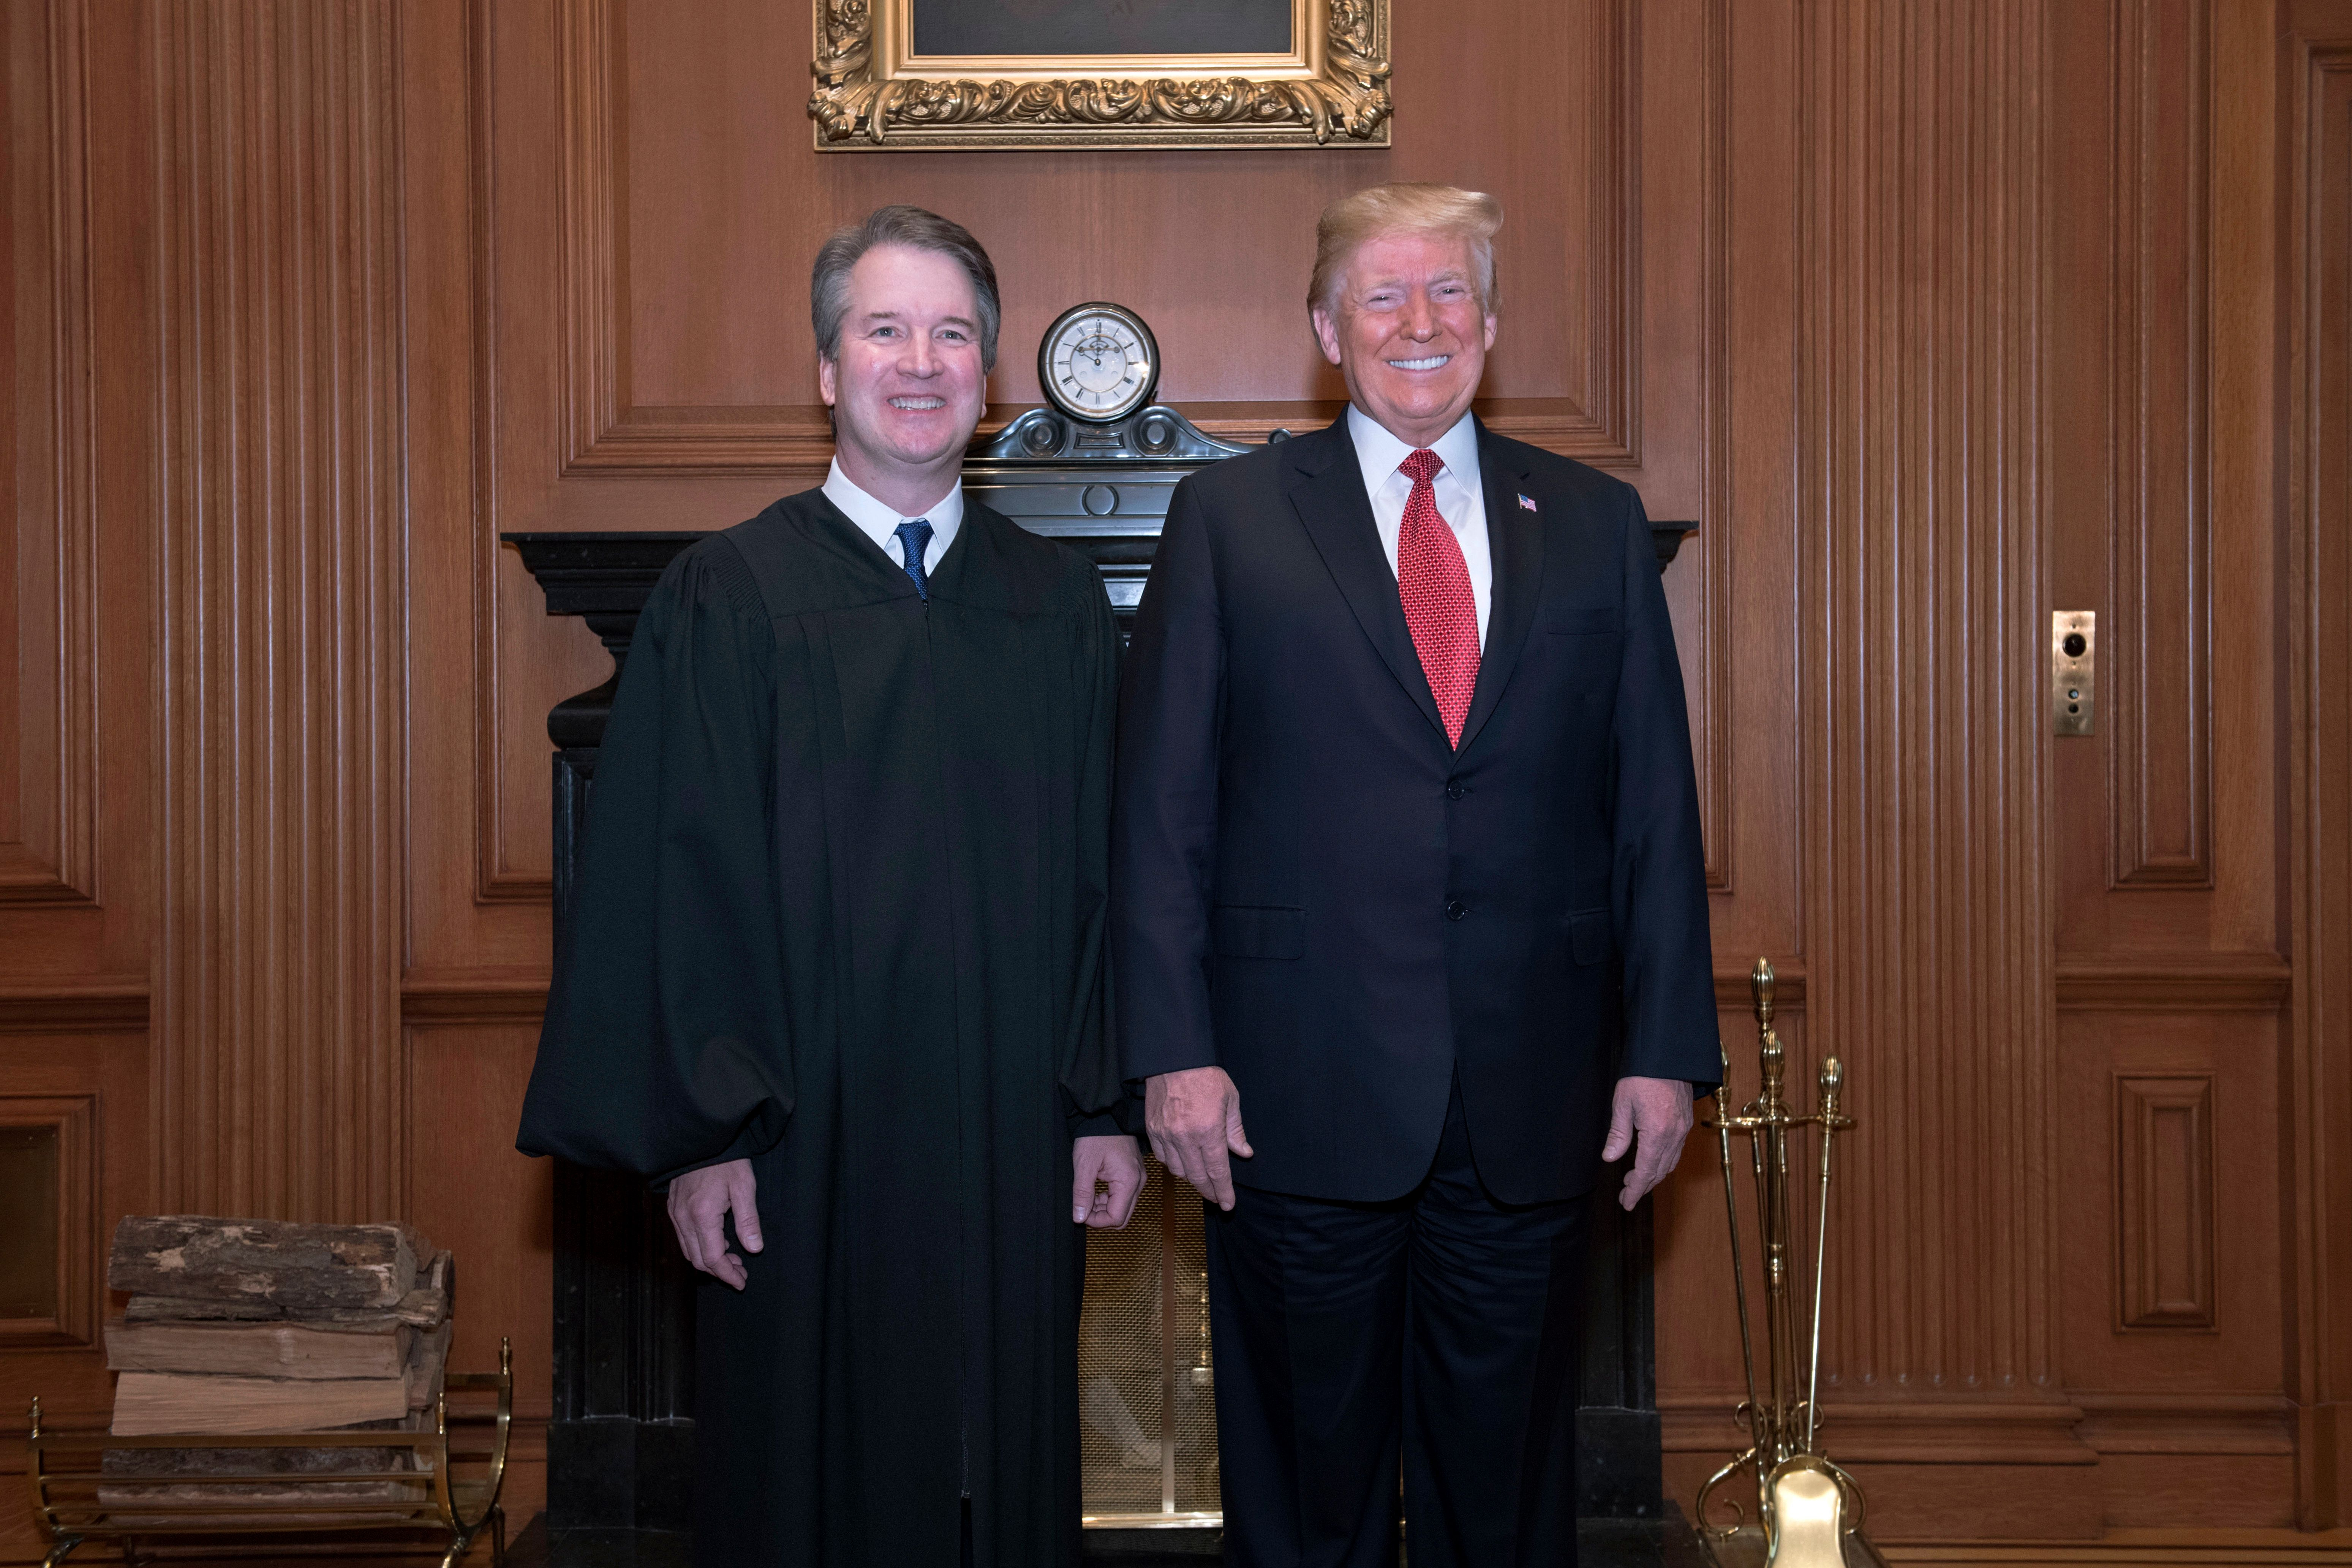 In this image provided by the Supreme Court, President Donald Trump poses with Associate Justice Brett Kavanaugh on Nov. 8, 2